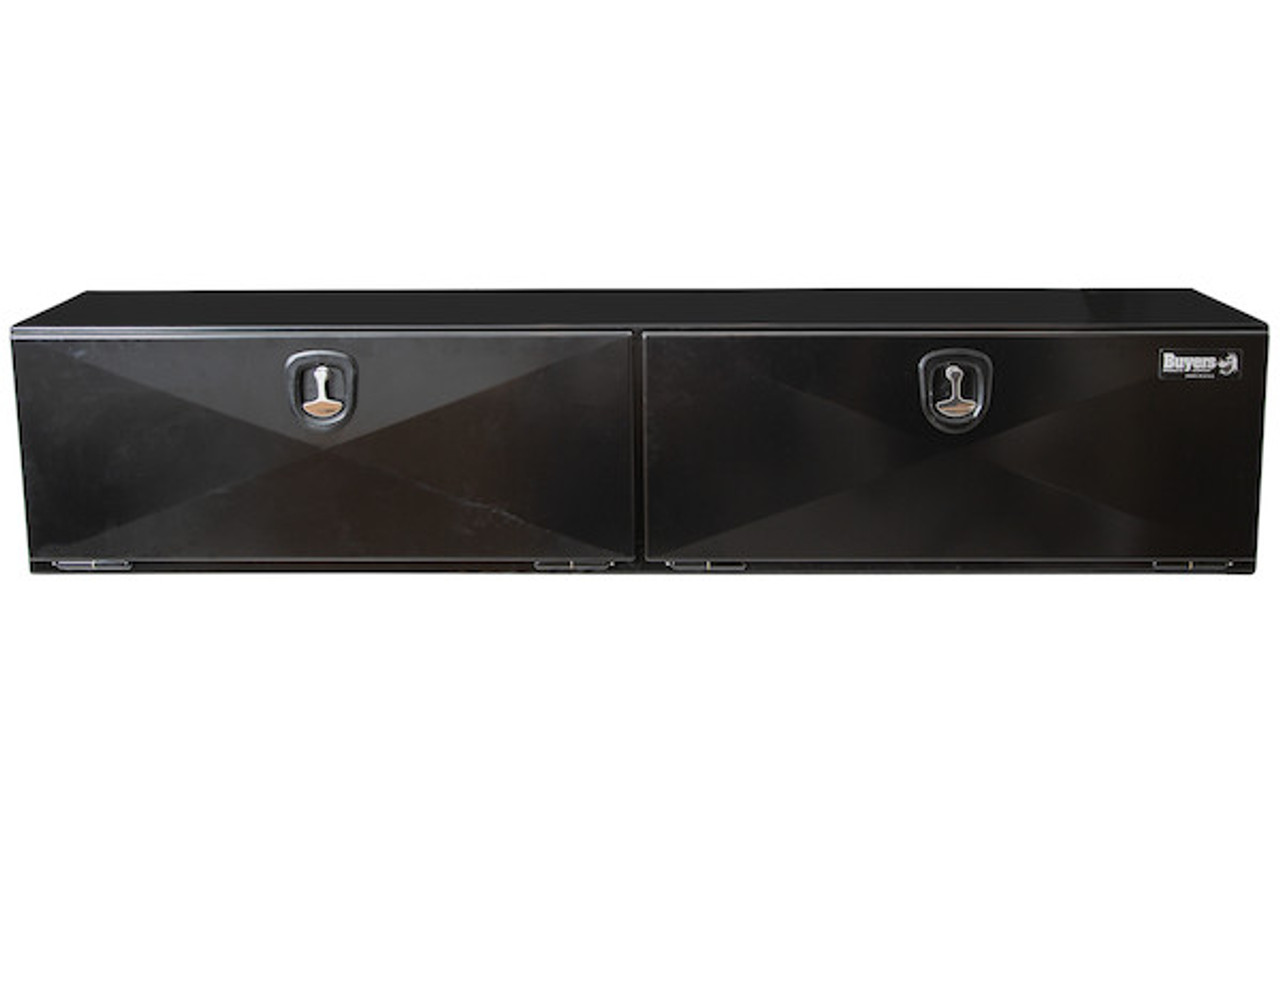 """1742335 BUYERS PRODUCTS XD BLACK STEEL UNDERBODY HEAVY DUTY TRUCK TOOLBOX 18""""Hx18""""Dx90""""W PICTURE # 2"""